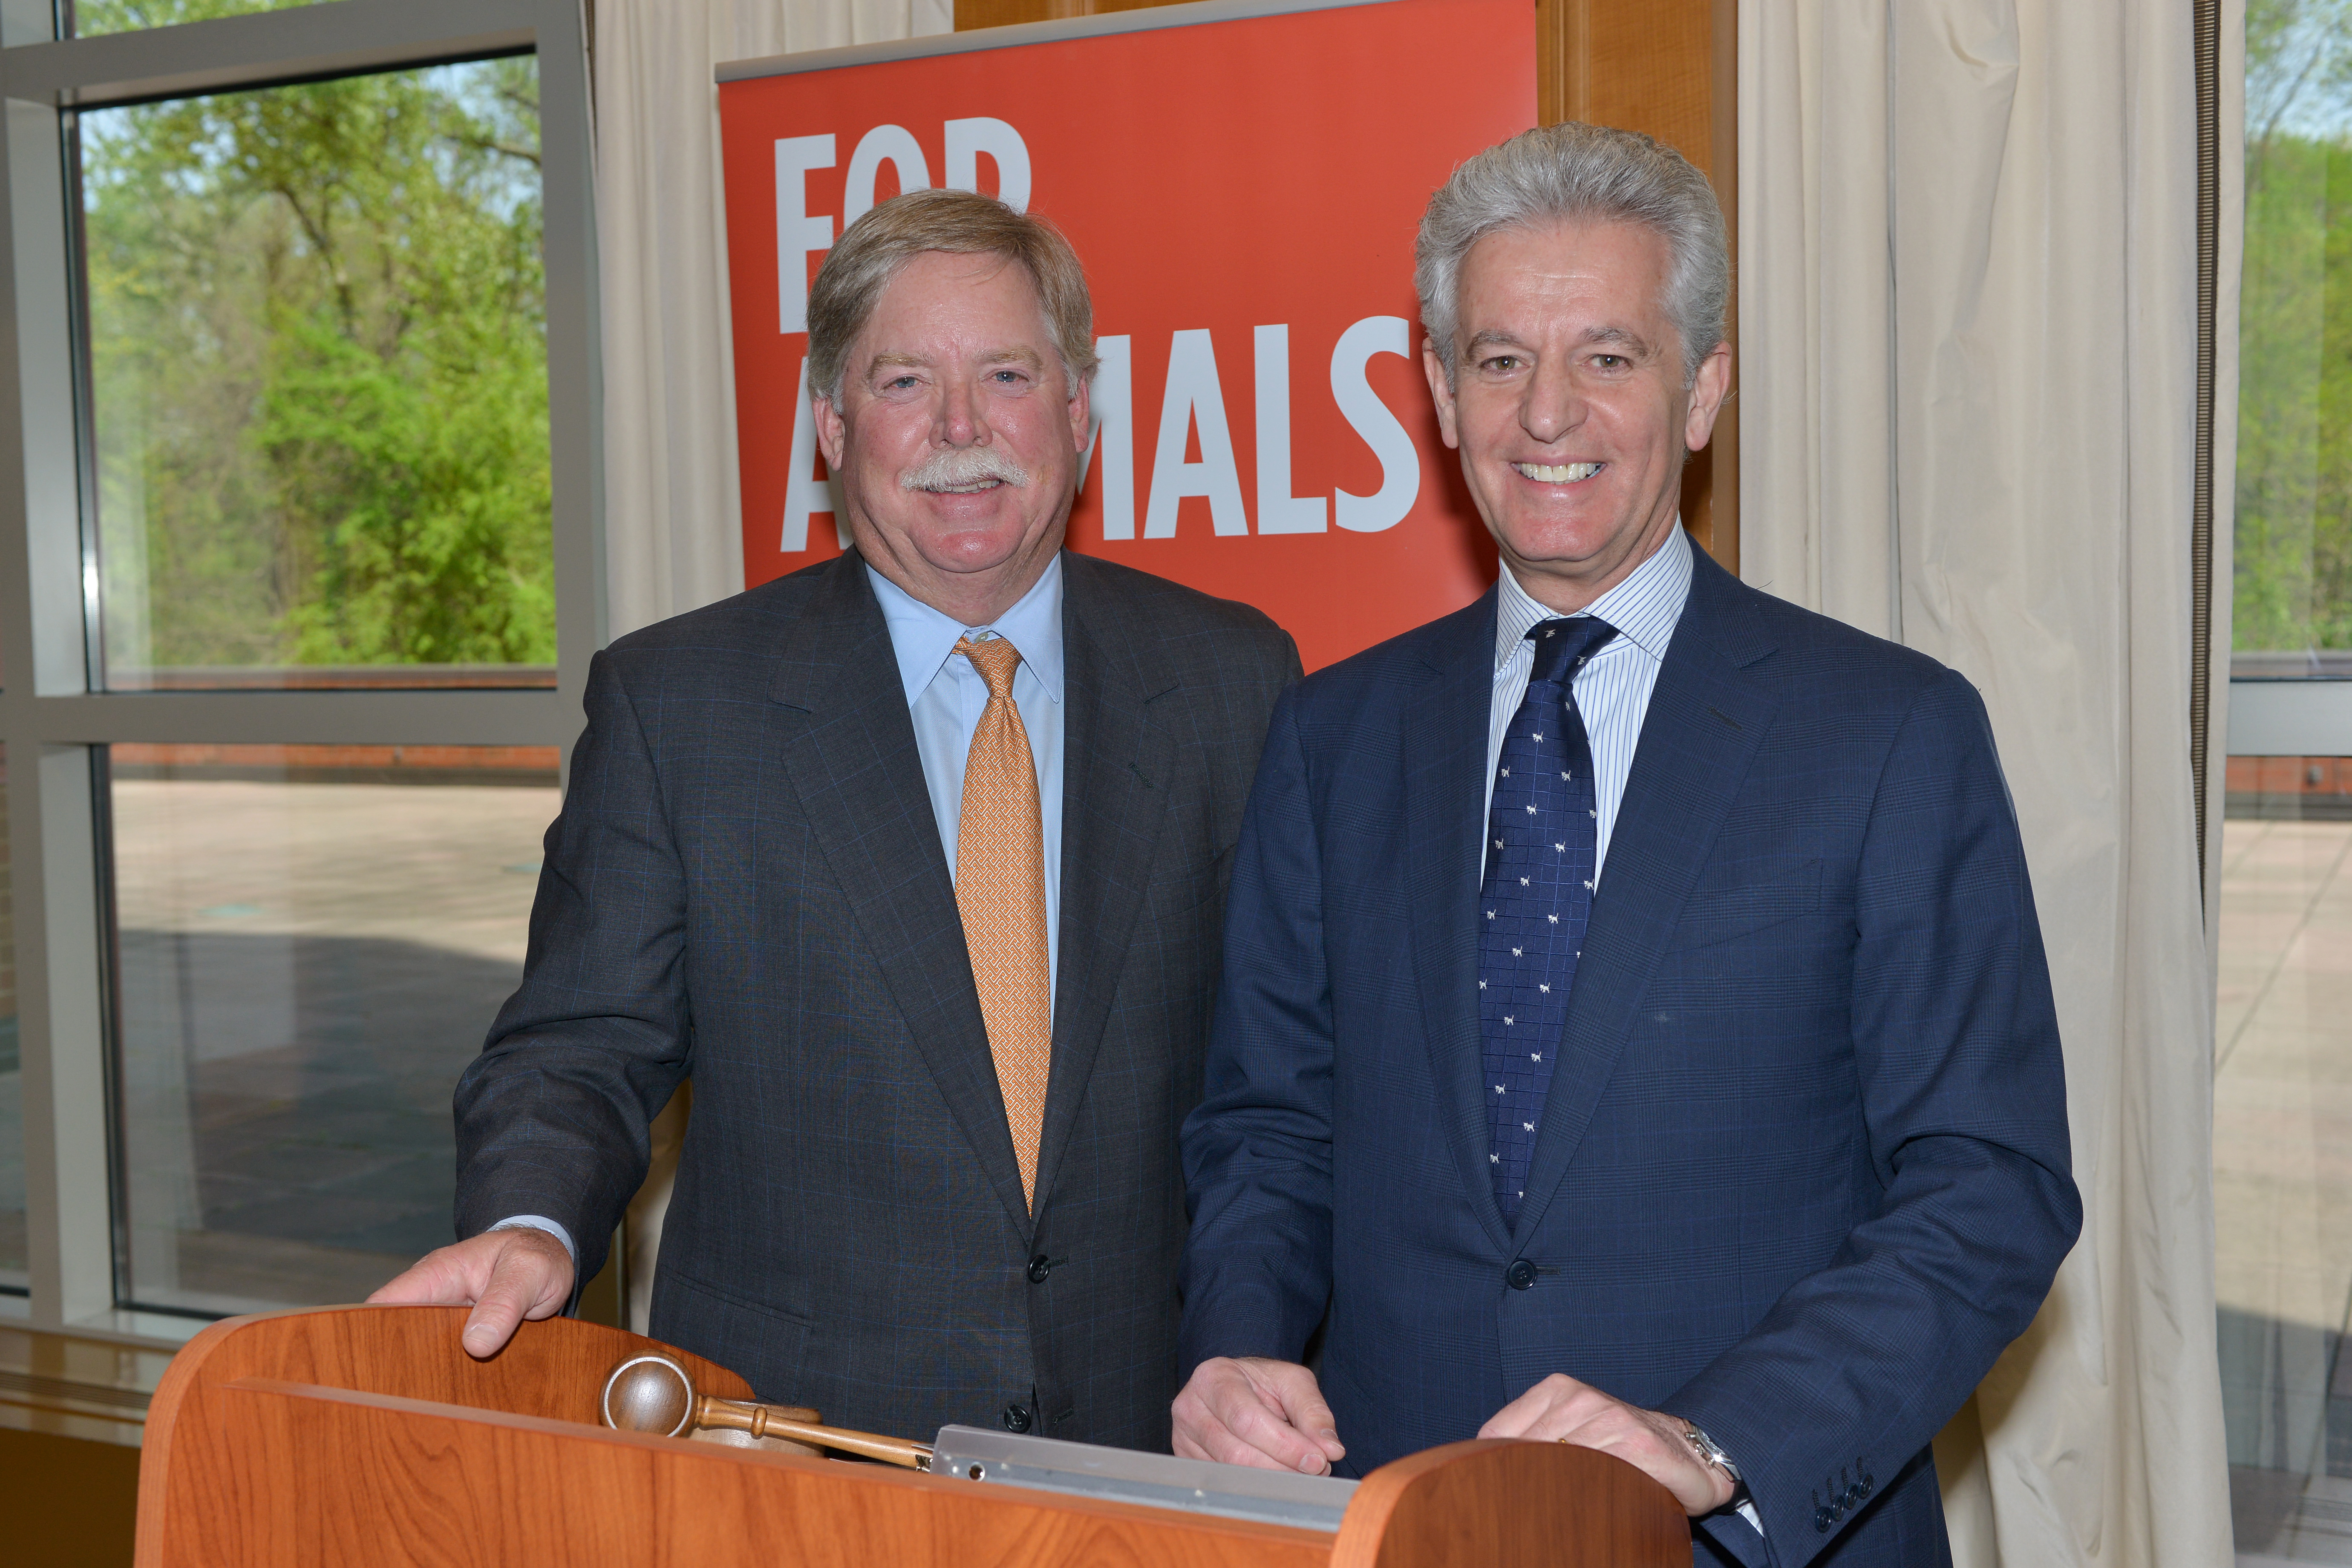 Zoetis Chairman of the Board Michael McCallister and CEO Juan Ramon Alaix at today's Annual Meeting of Shareholders.